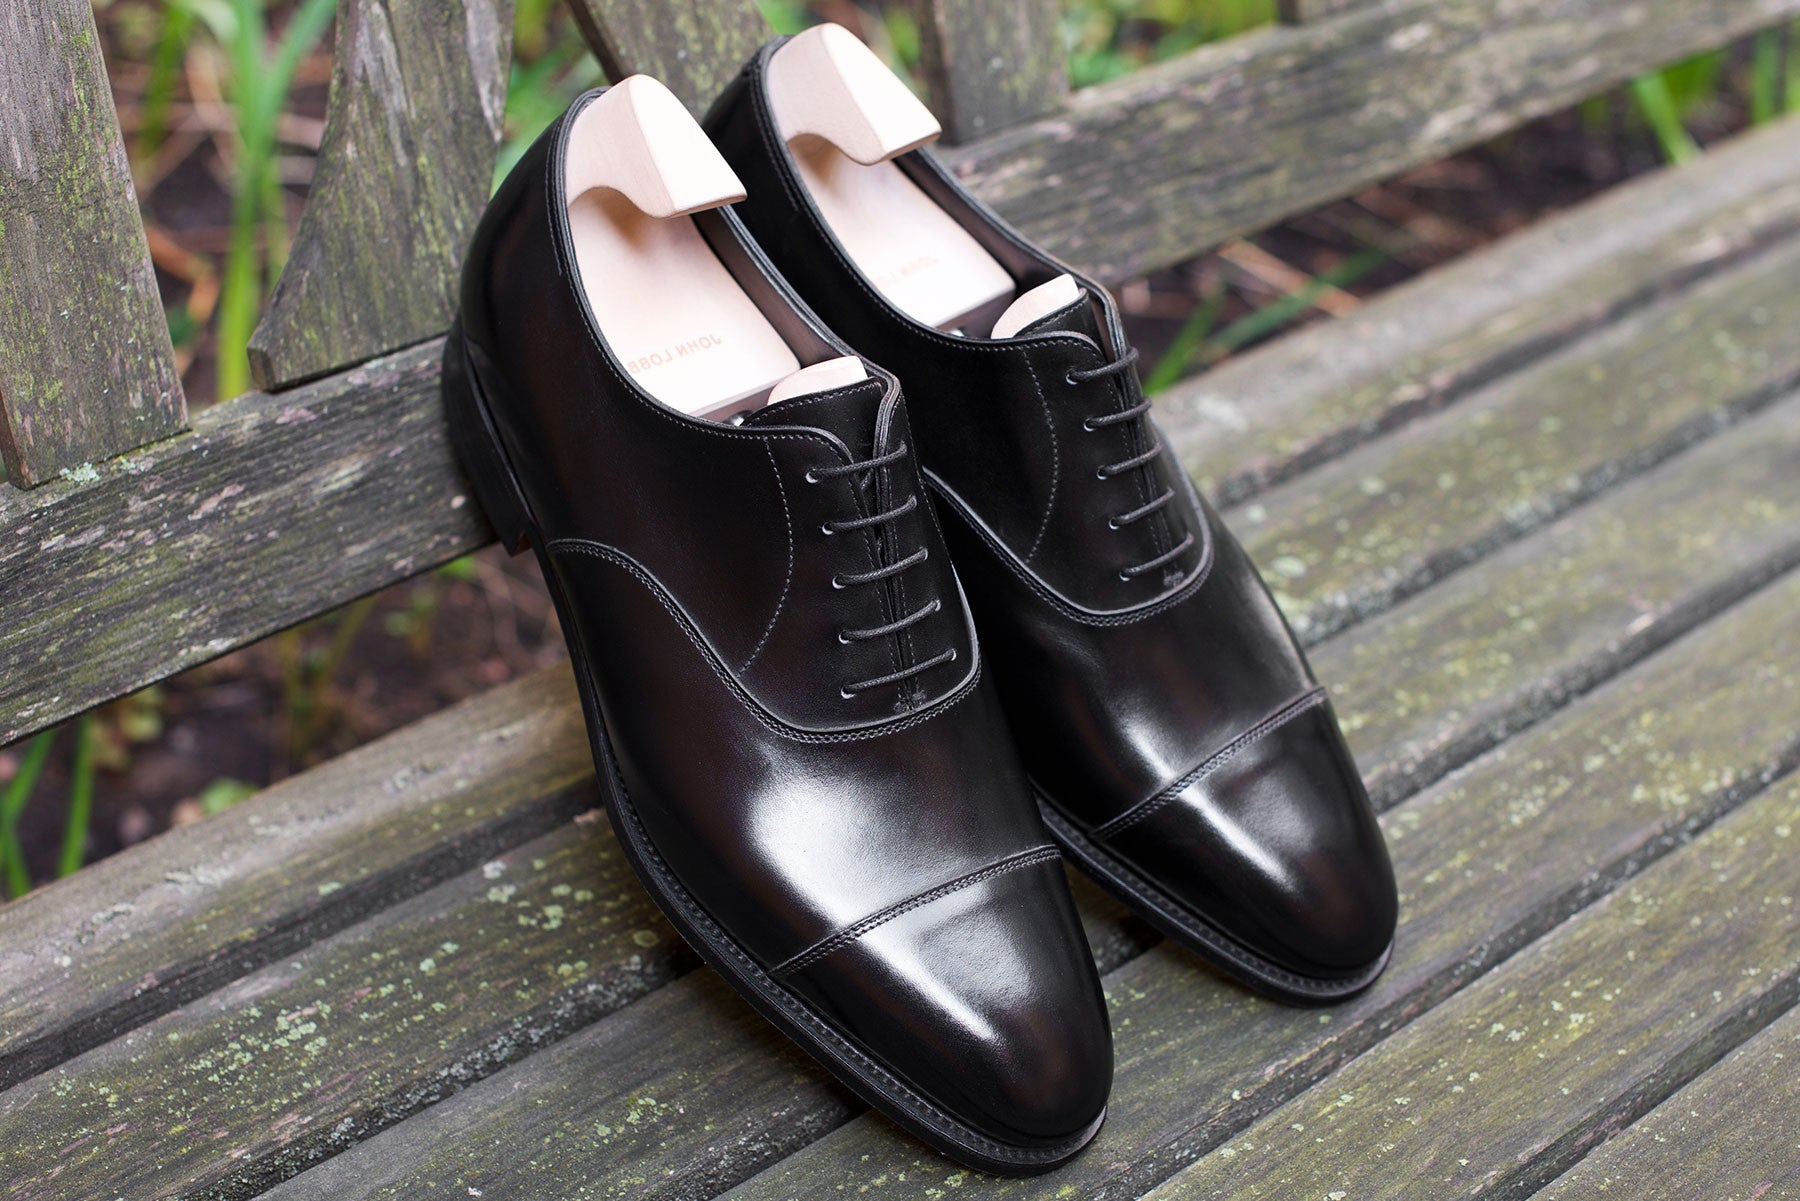 John Lobb City II Black Calf - Wide Fit